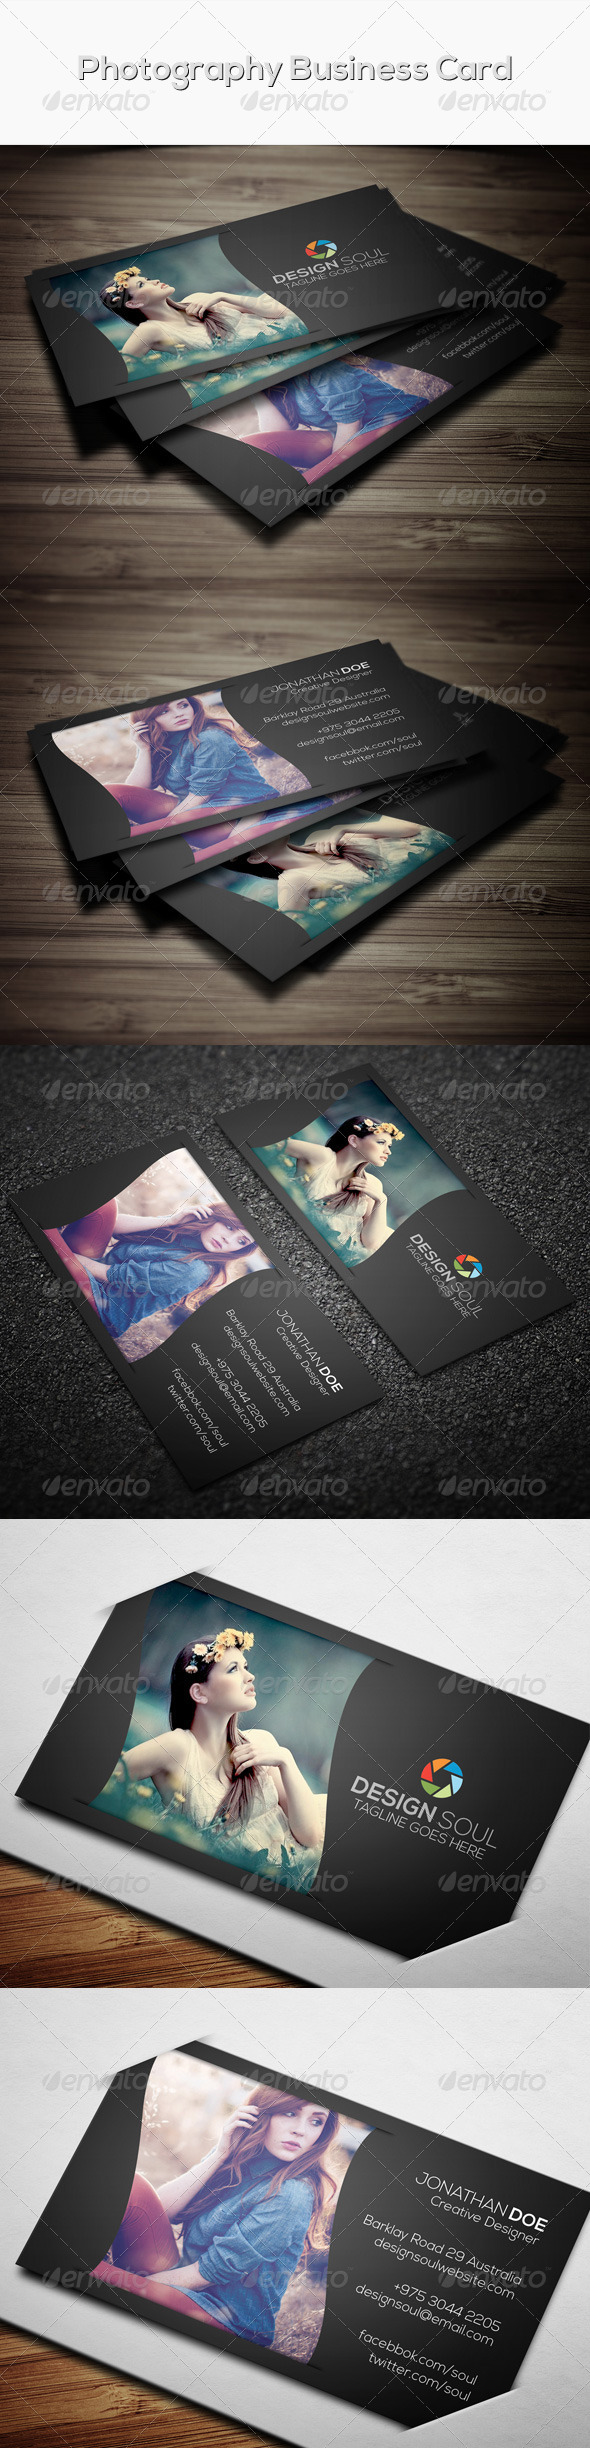 Photography Business Card Template #card #vcard Download: http ...